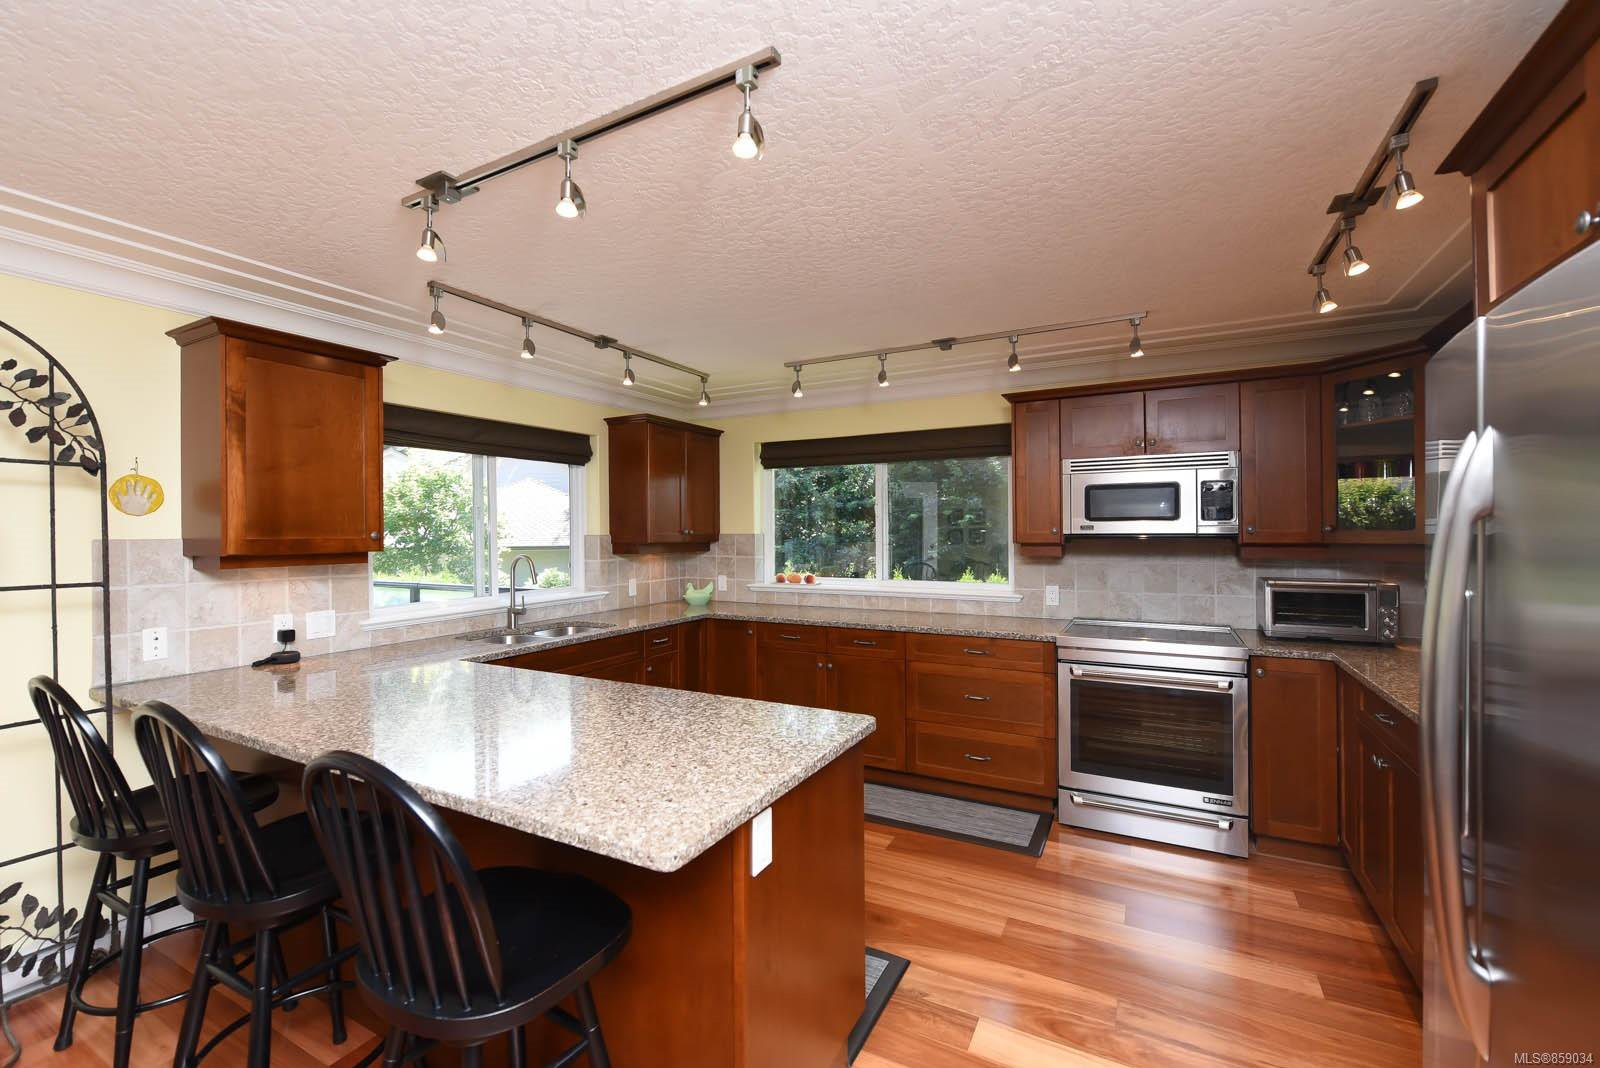 Main Photo: 108 199 31st St in : CV Courtenay City Condo for sale (Comox Valley)  : MLS®# 859034